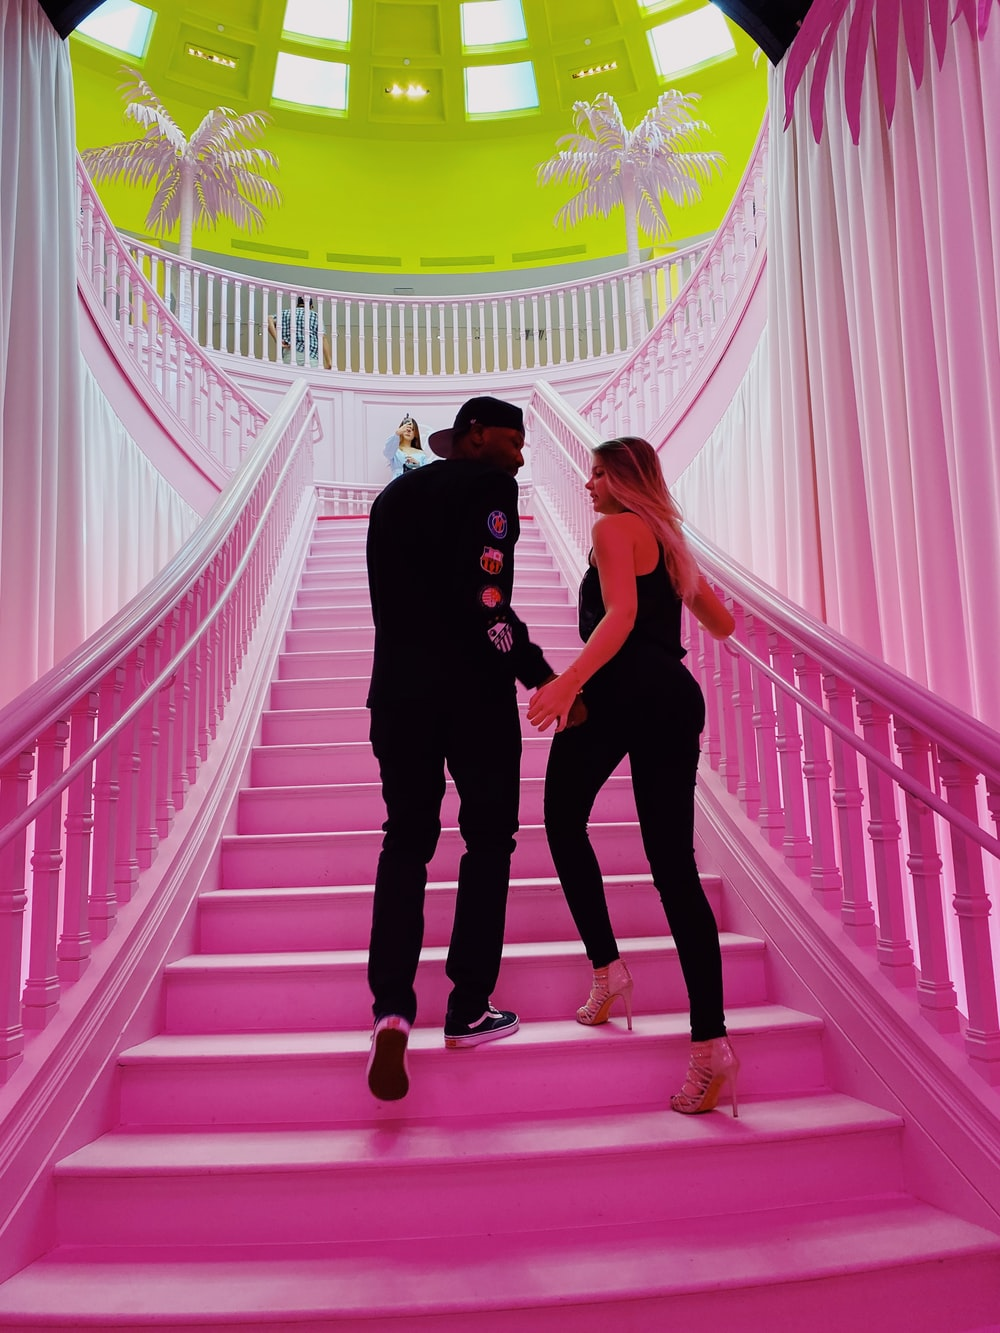 man and woman climbing stairs while holding hands